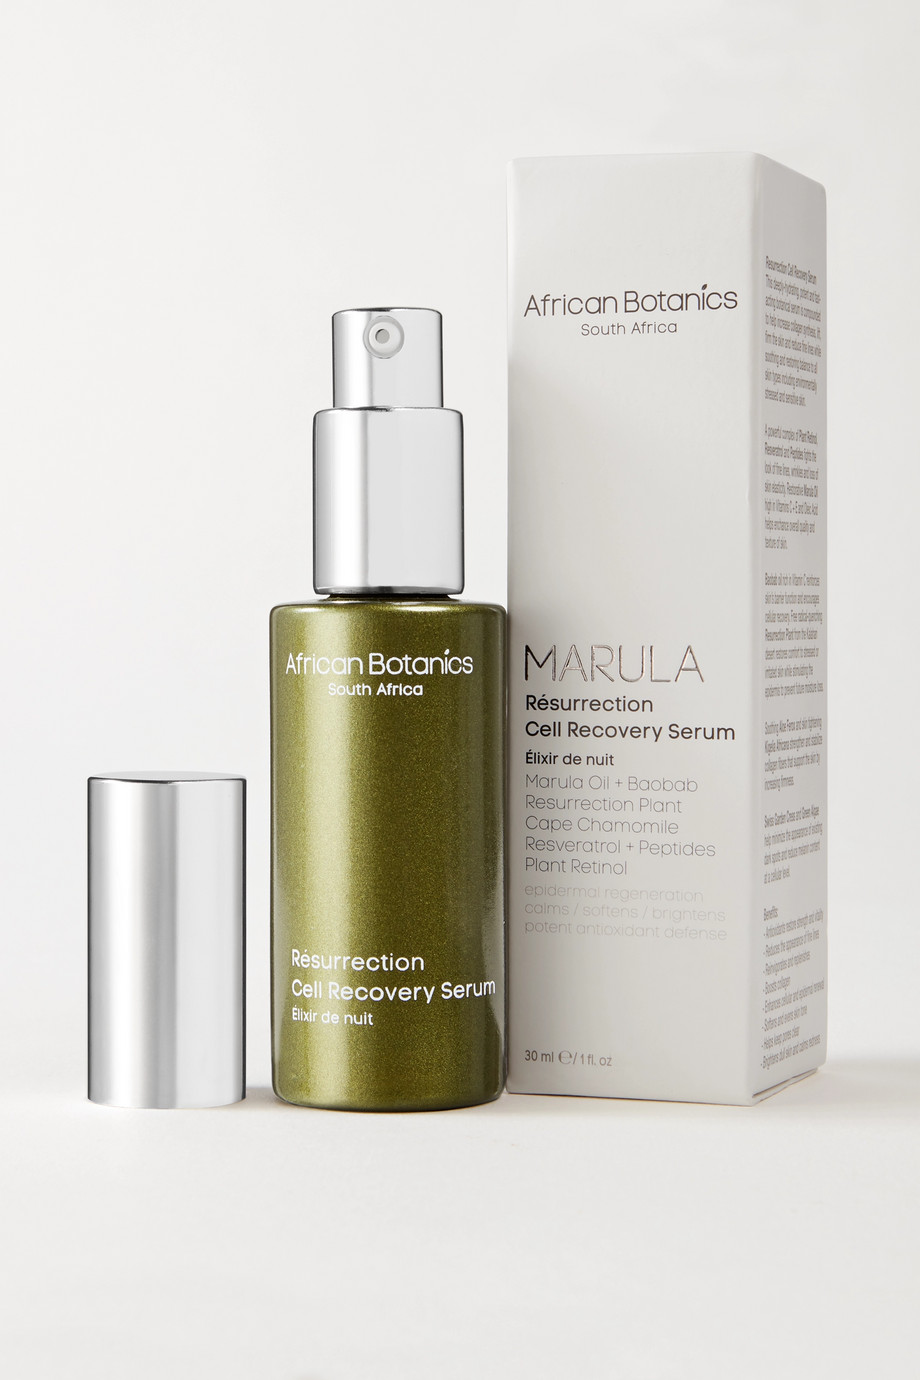 African Botanics Marula Résurrection Cell Recovery Serum, 30ml